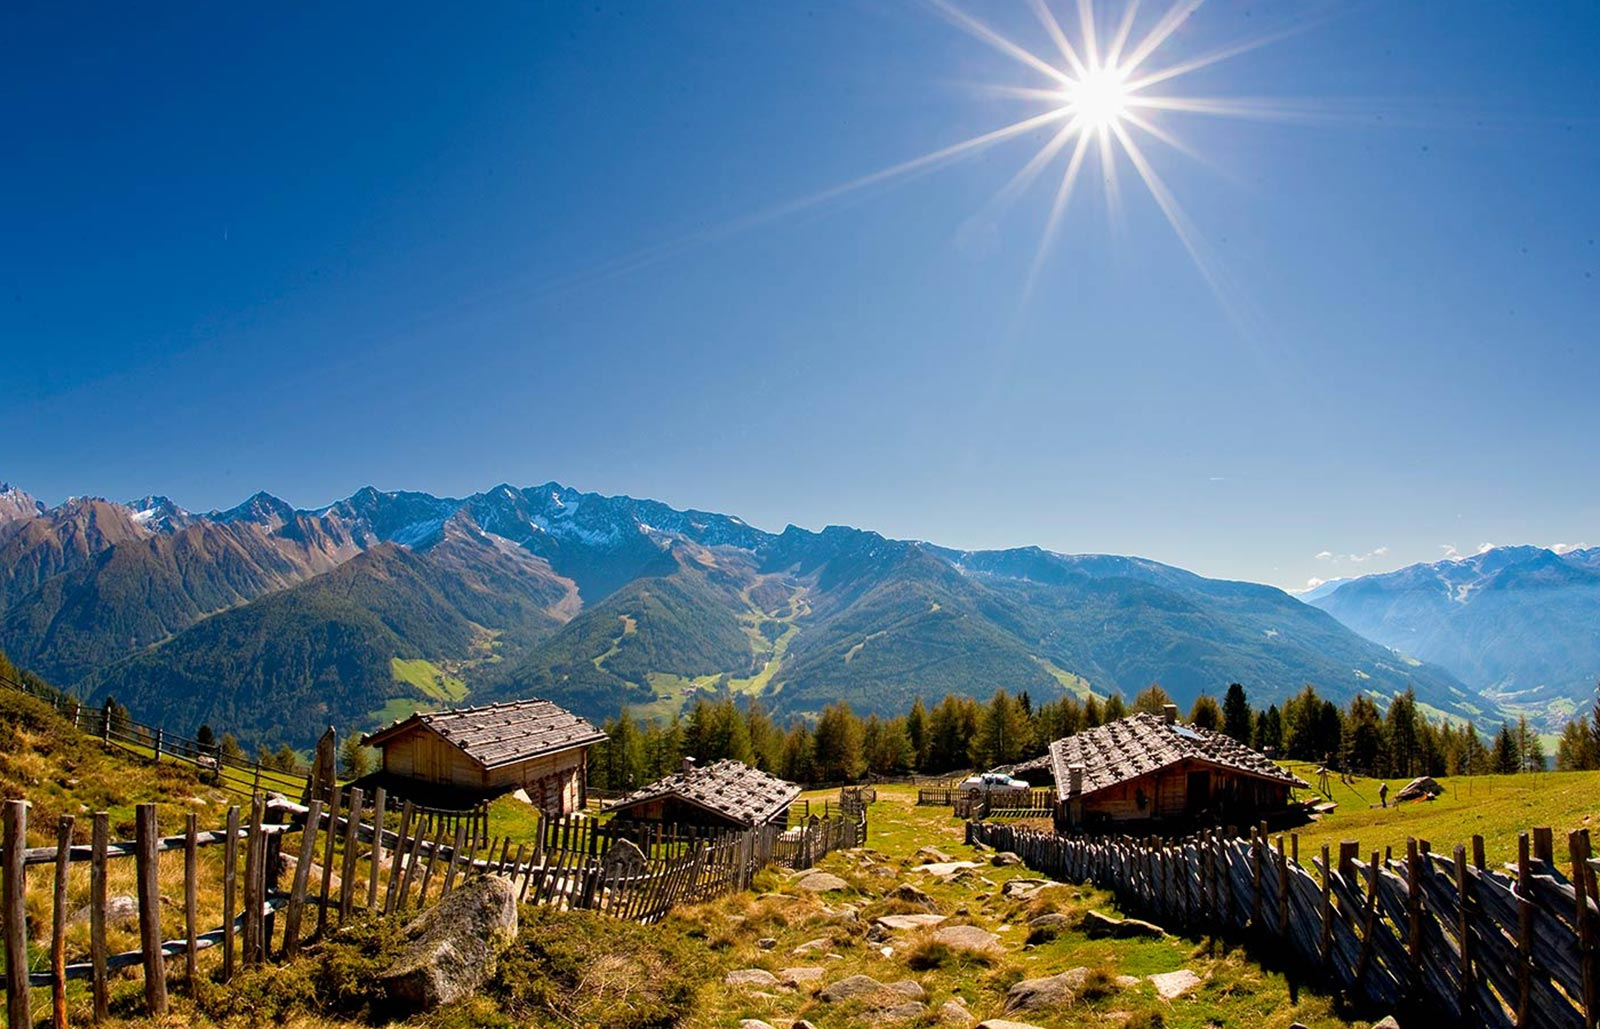 Wonderful view in the South Tyrolean Dolomites in summer, the sun is shining bright.